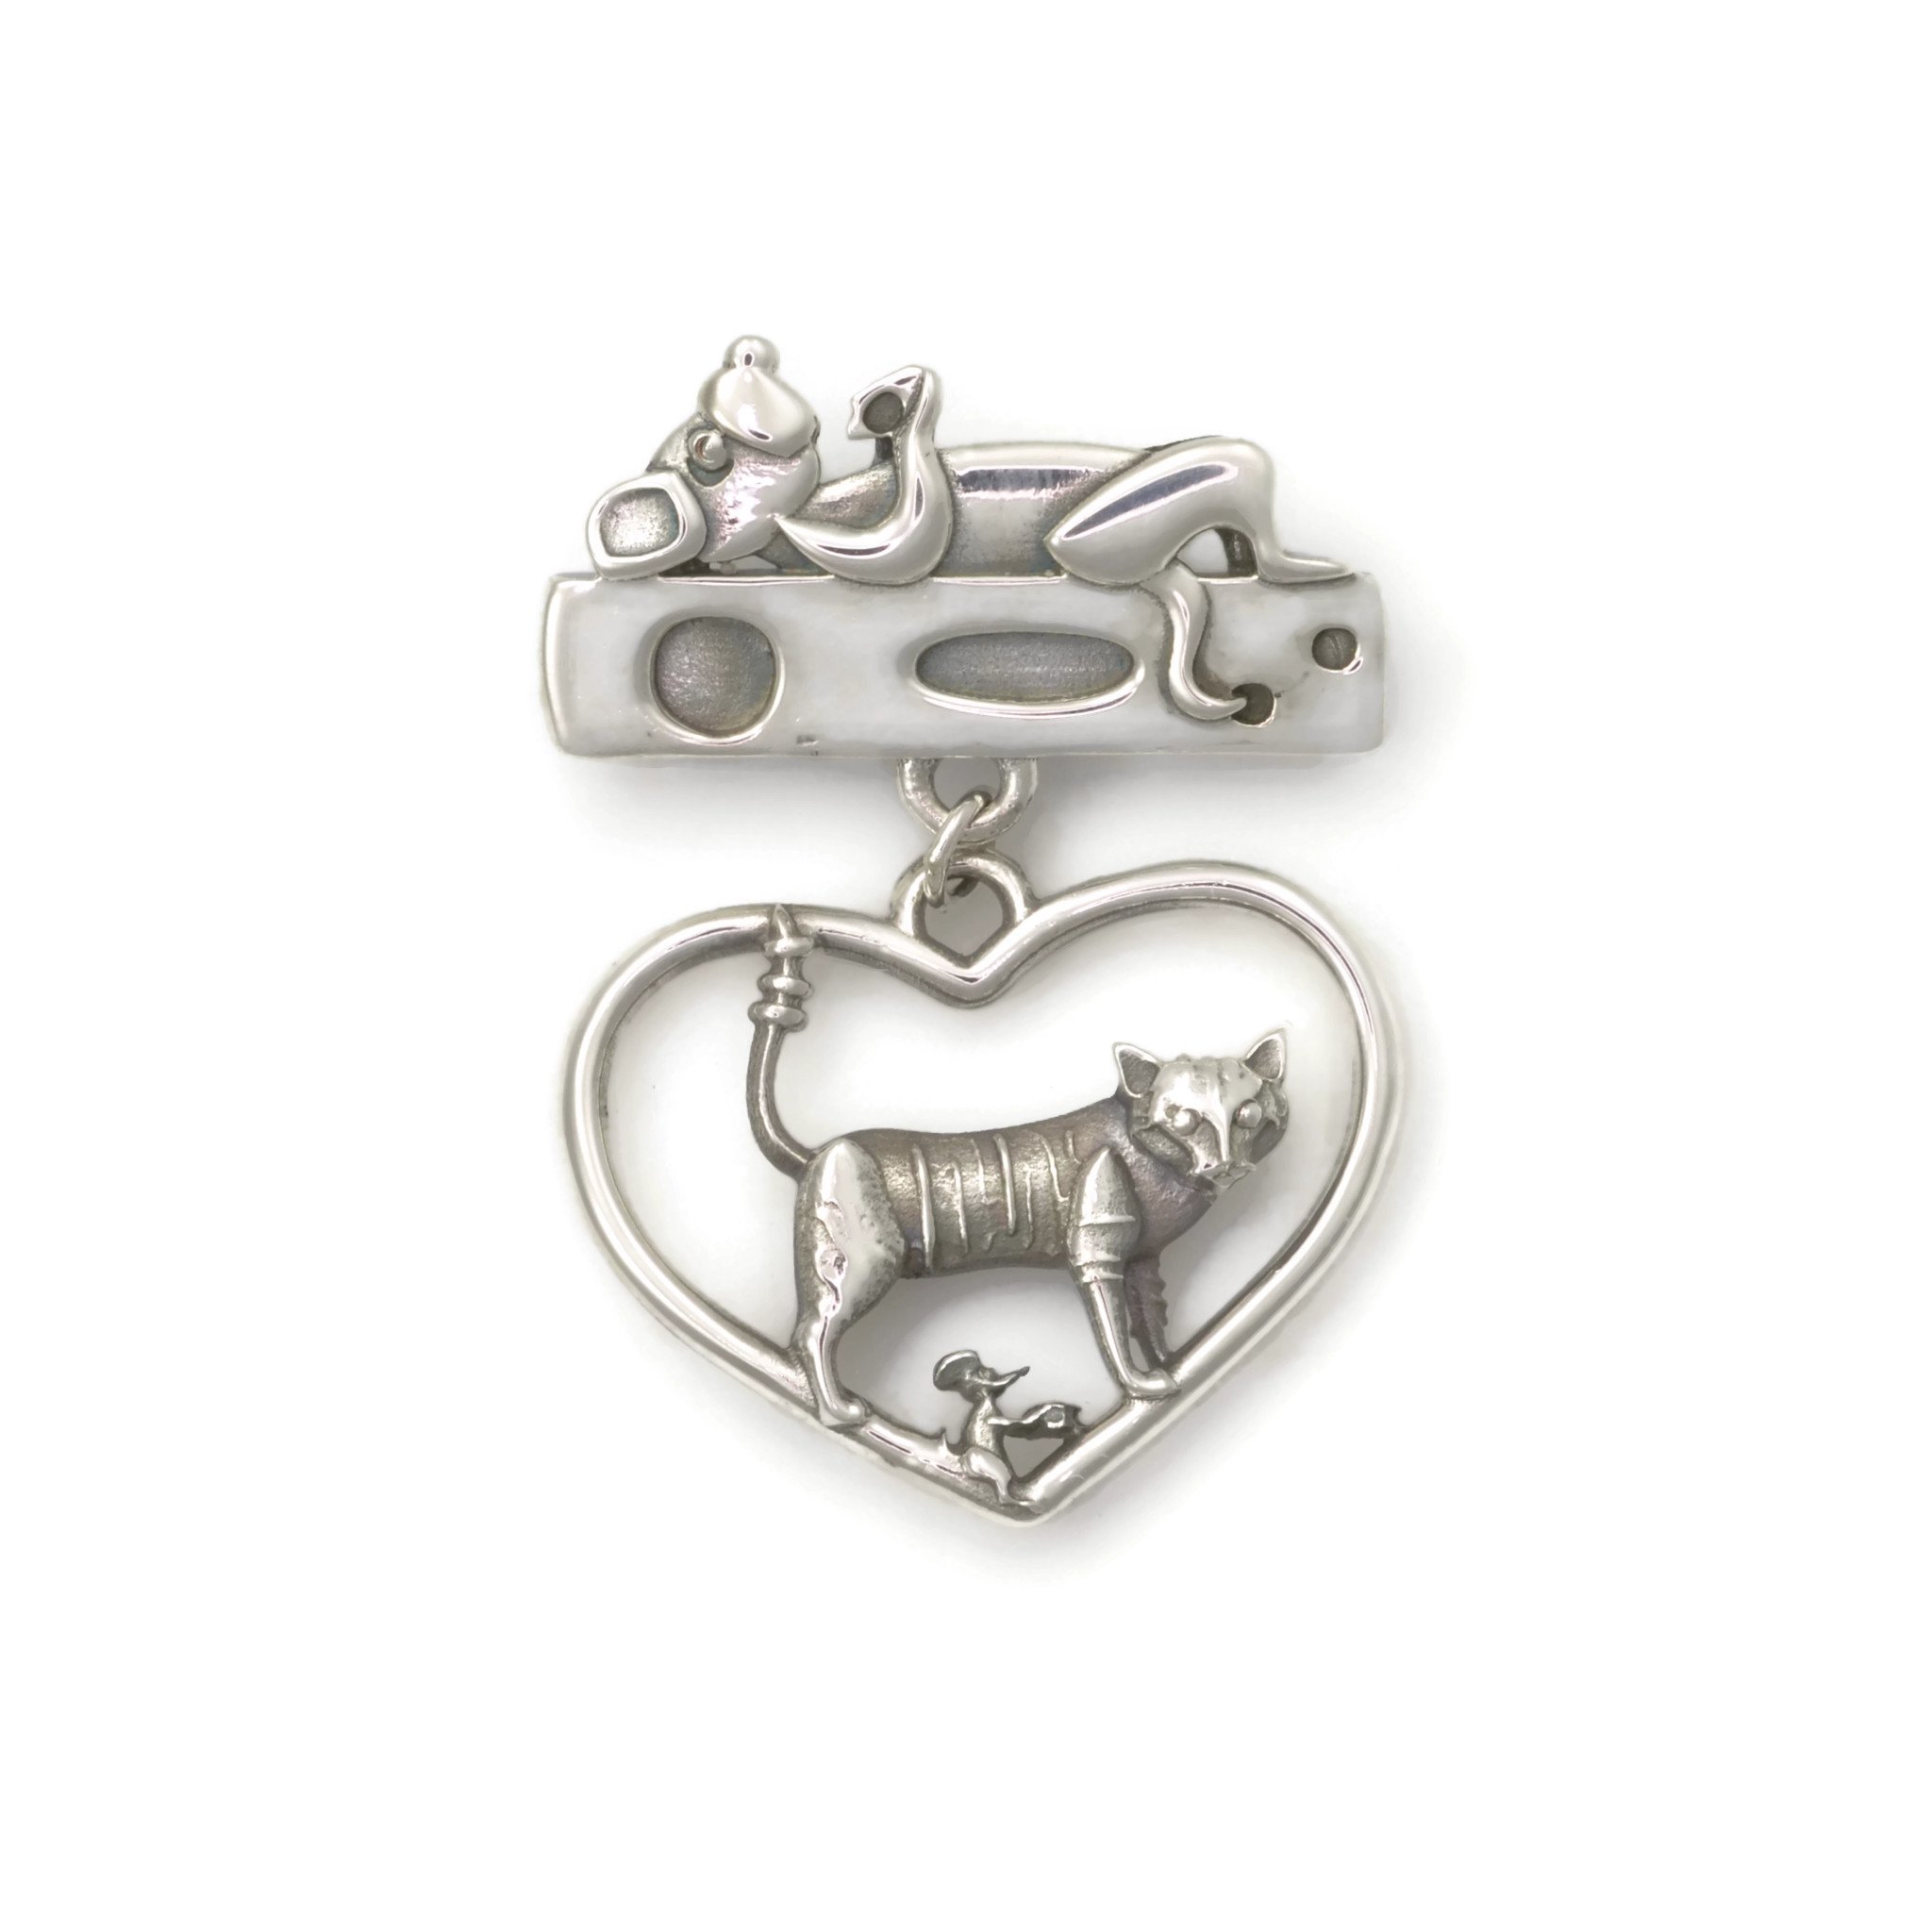 Sterling Silver Cat Brooch, Silver Tabby Cat Pin by Donna Pizarro fr her Animal Whimsey Collection of Fine Jewelry